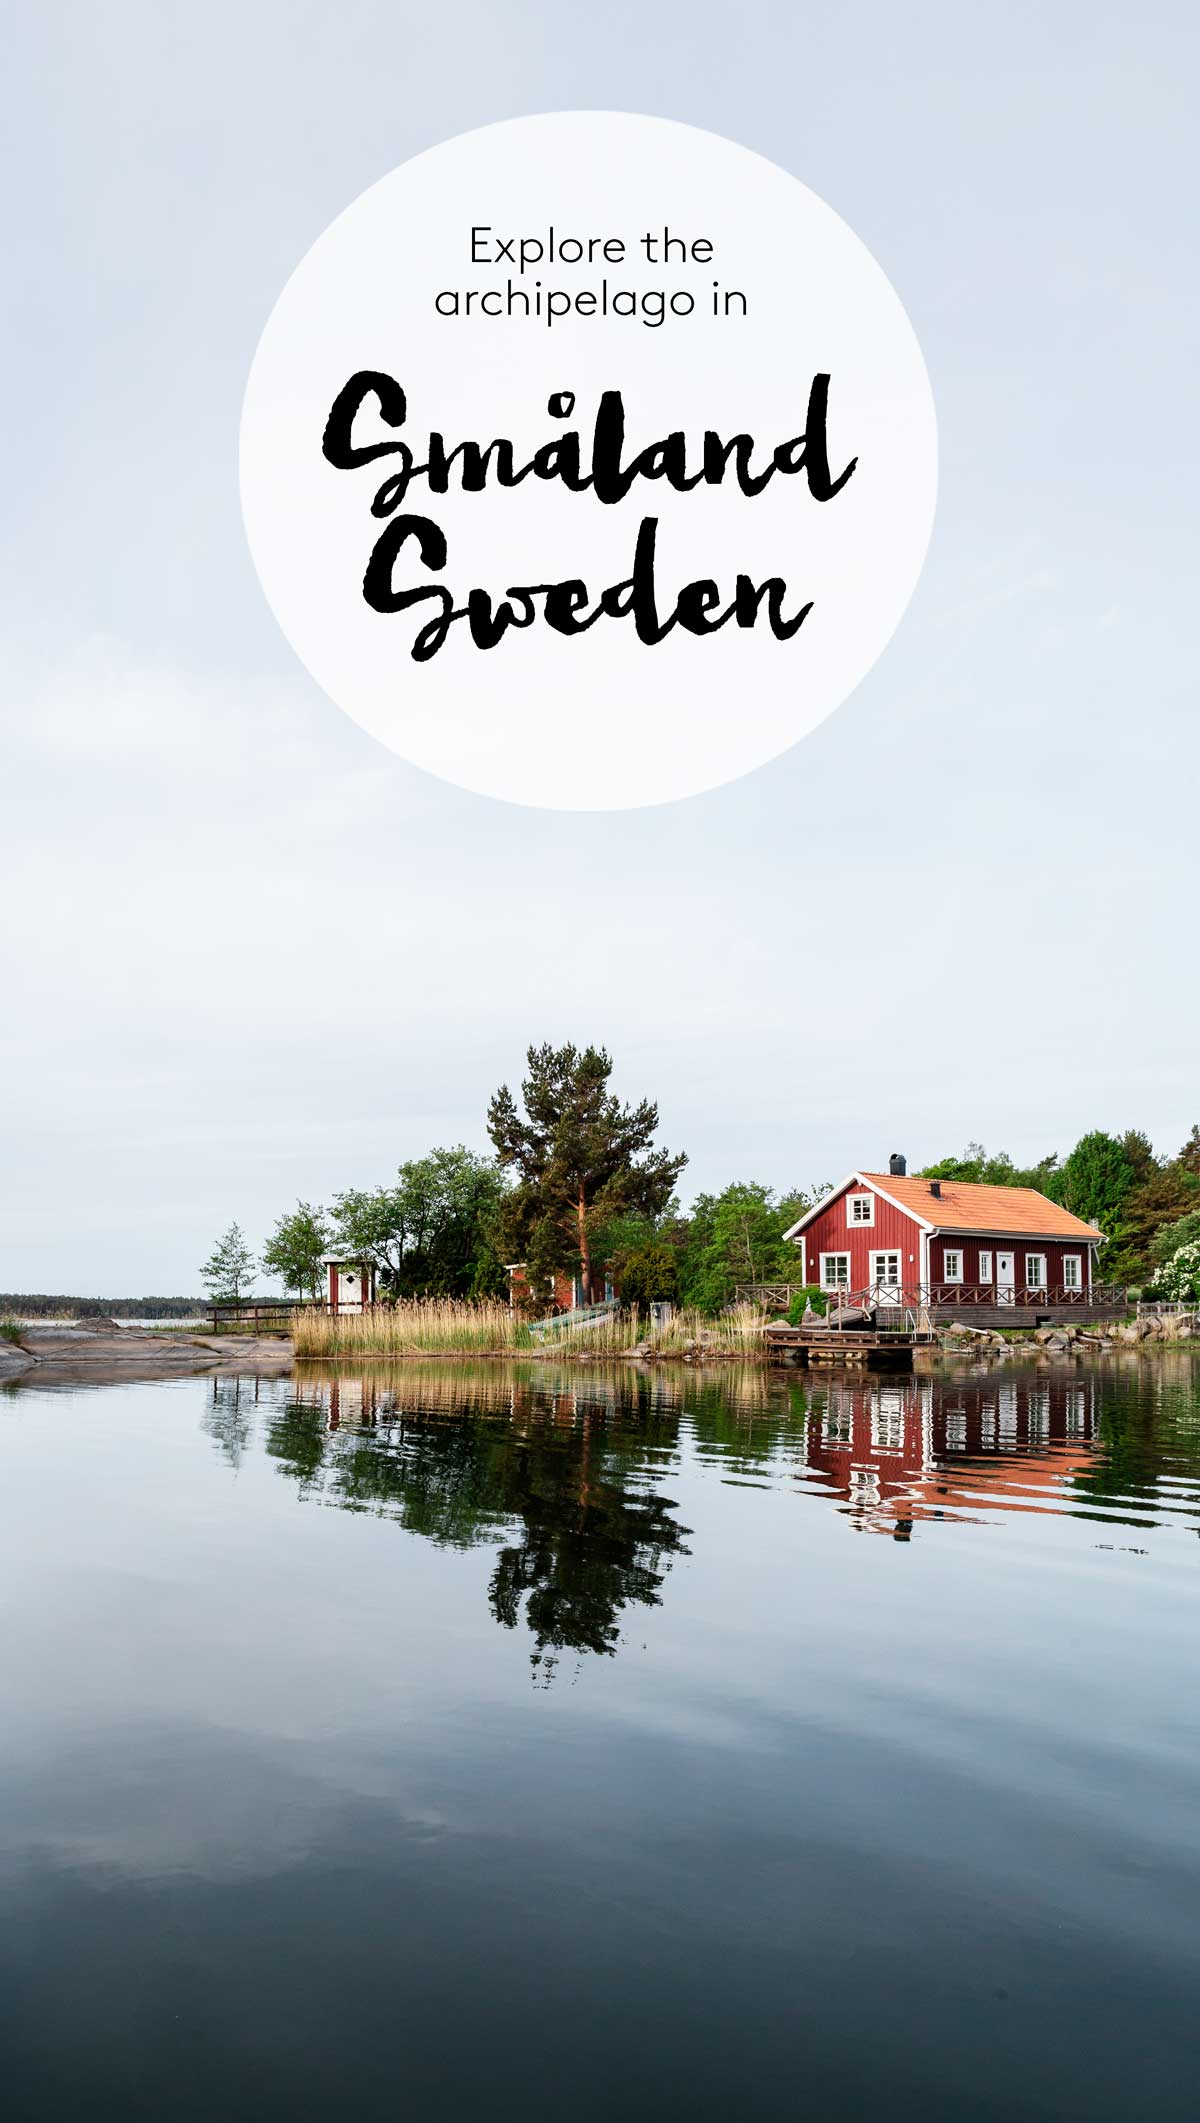 Exploring the archipelago in Småland Sweden